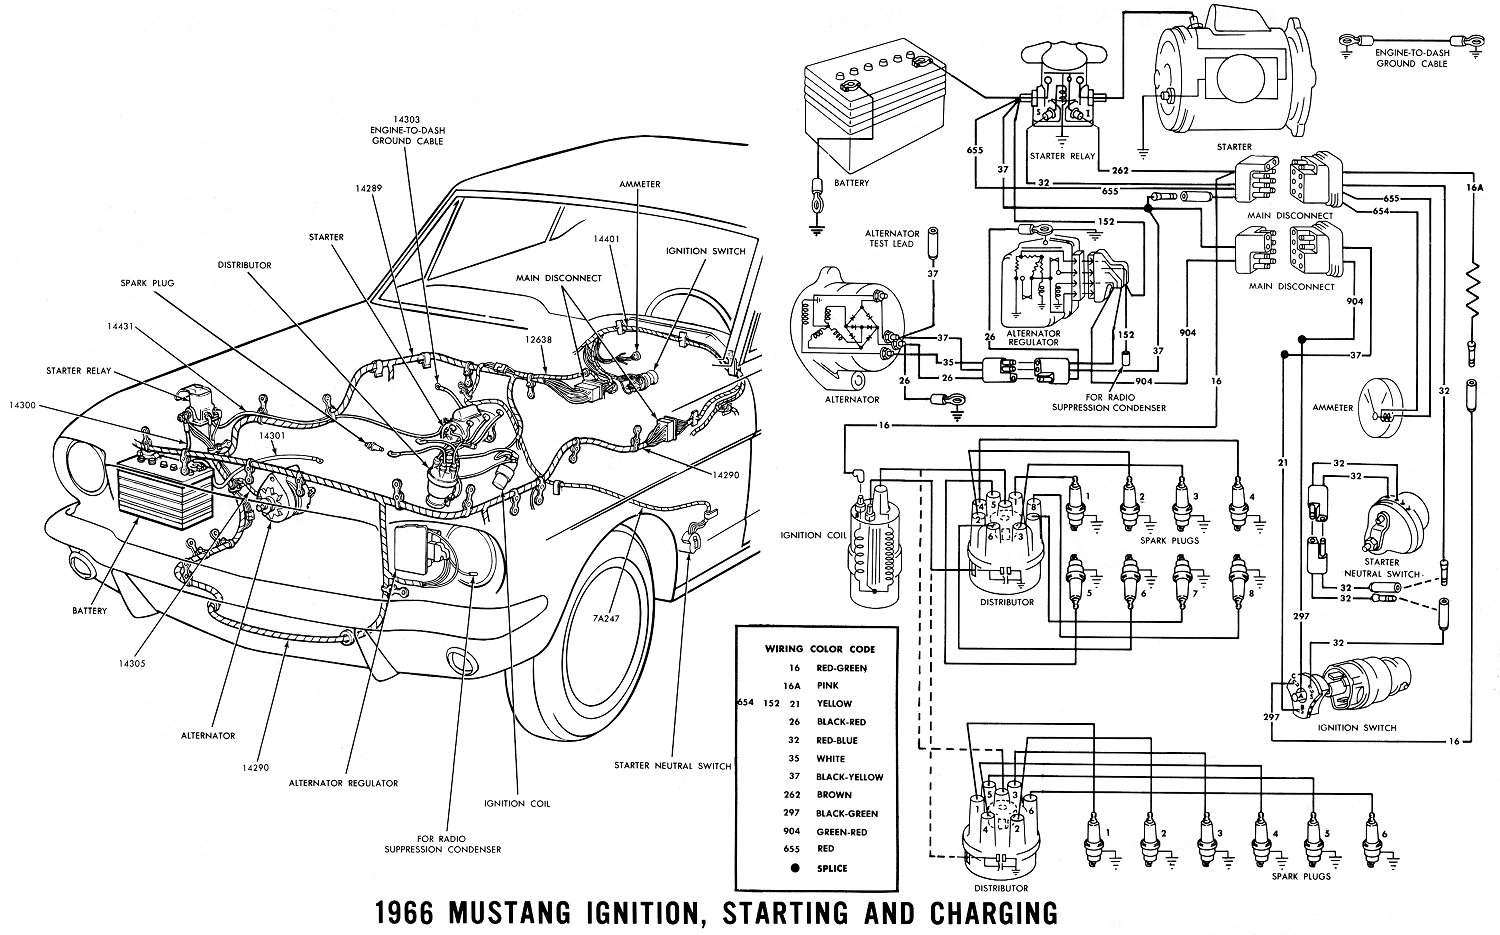 66ignit 1966 mustang wiring diagrams average joe restoration 1966 mustang wiring diagrams at webbmarketing.co